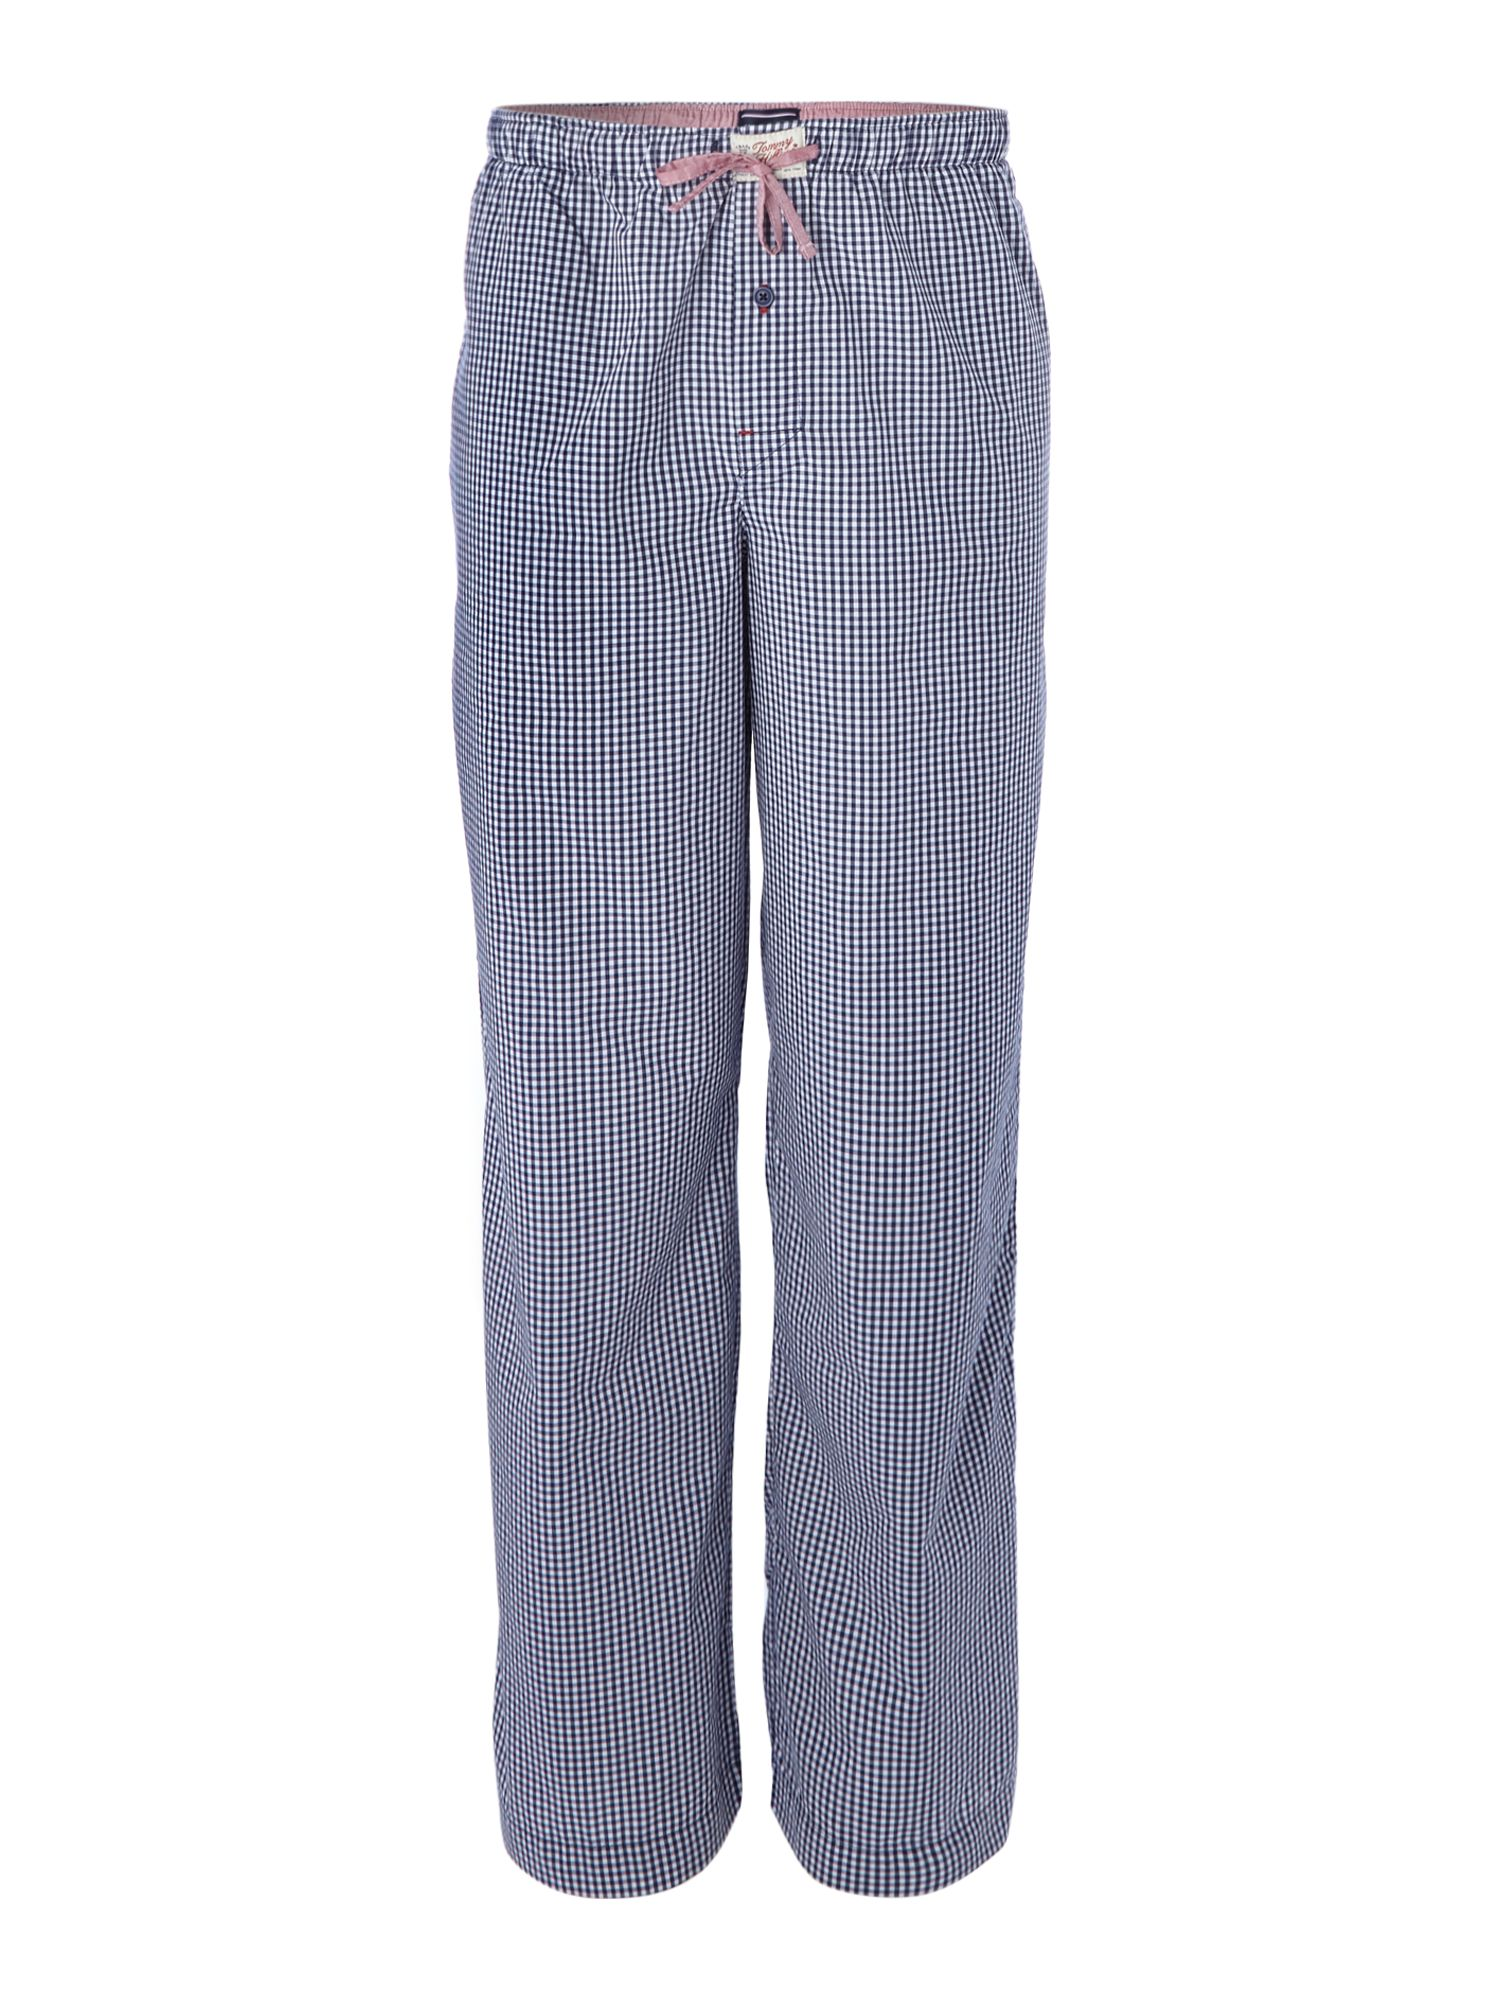 Woven gingham pant